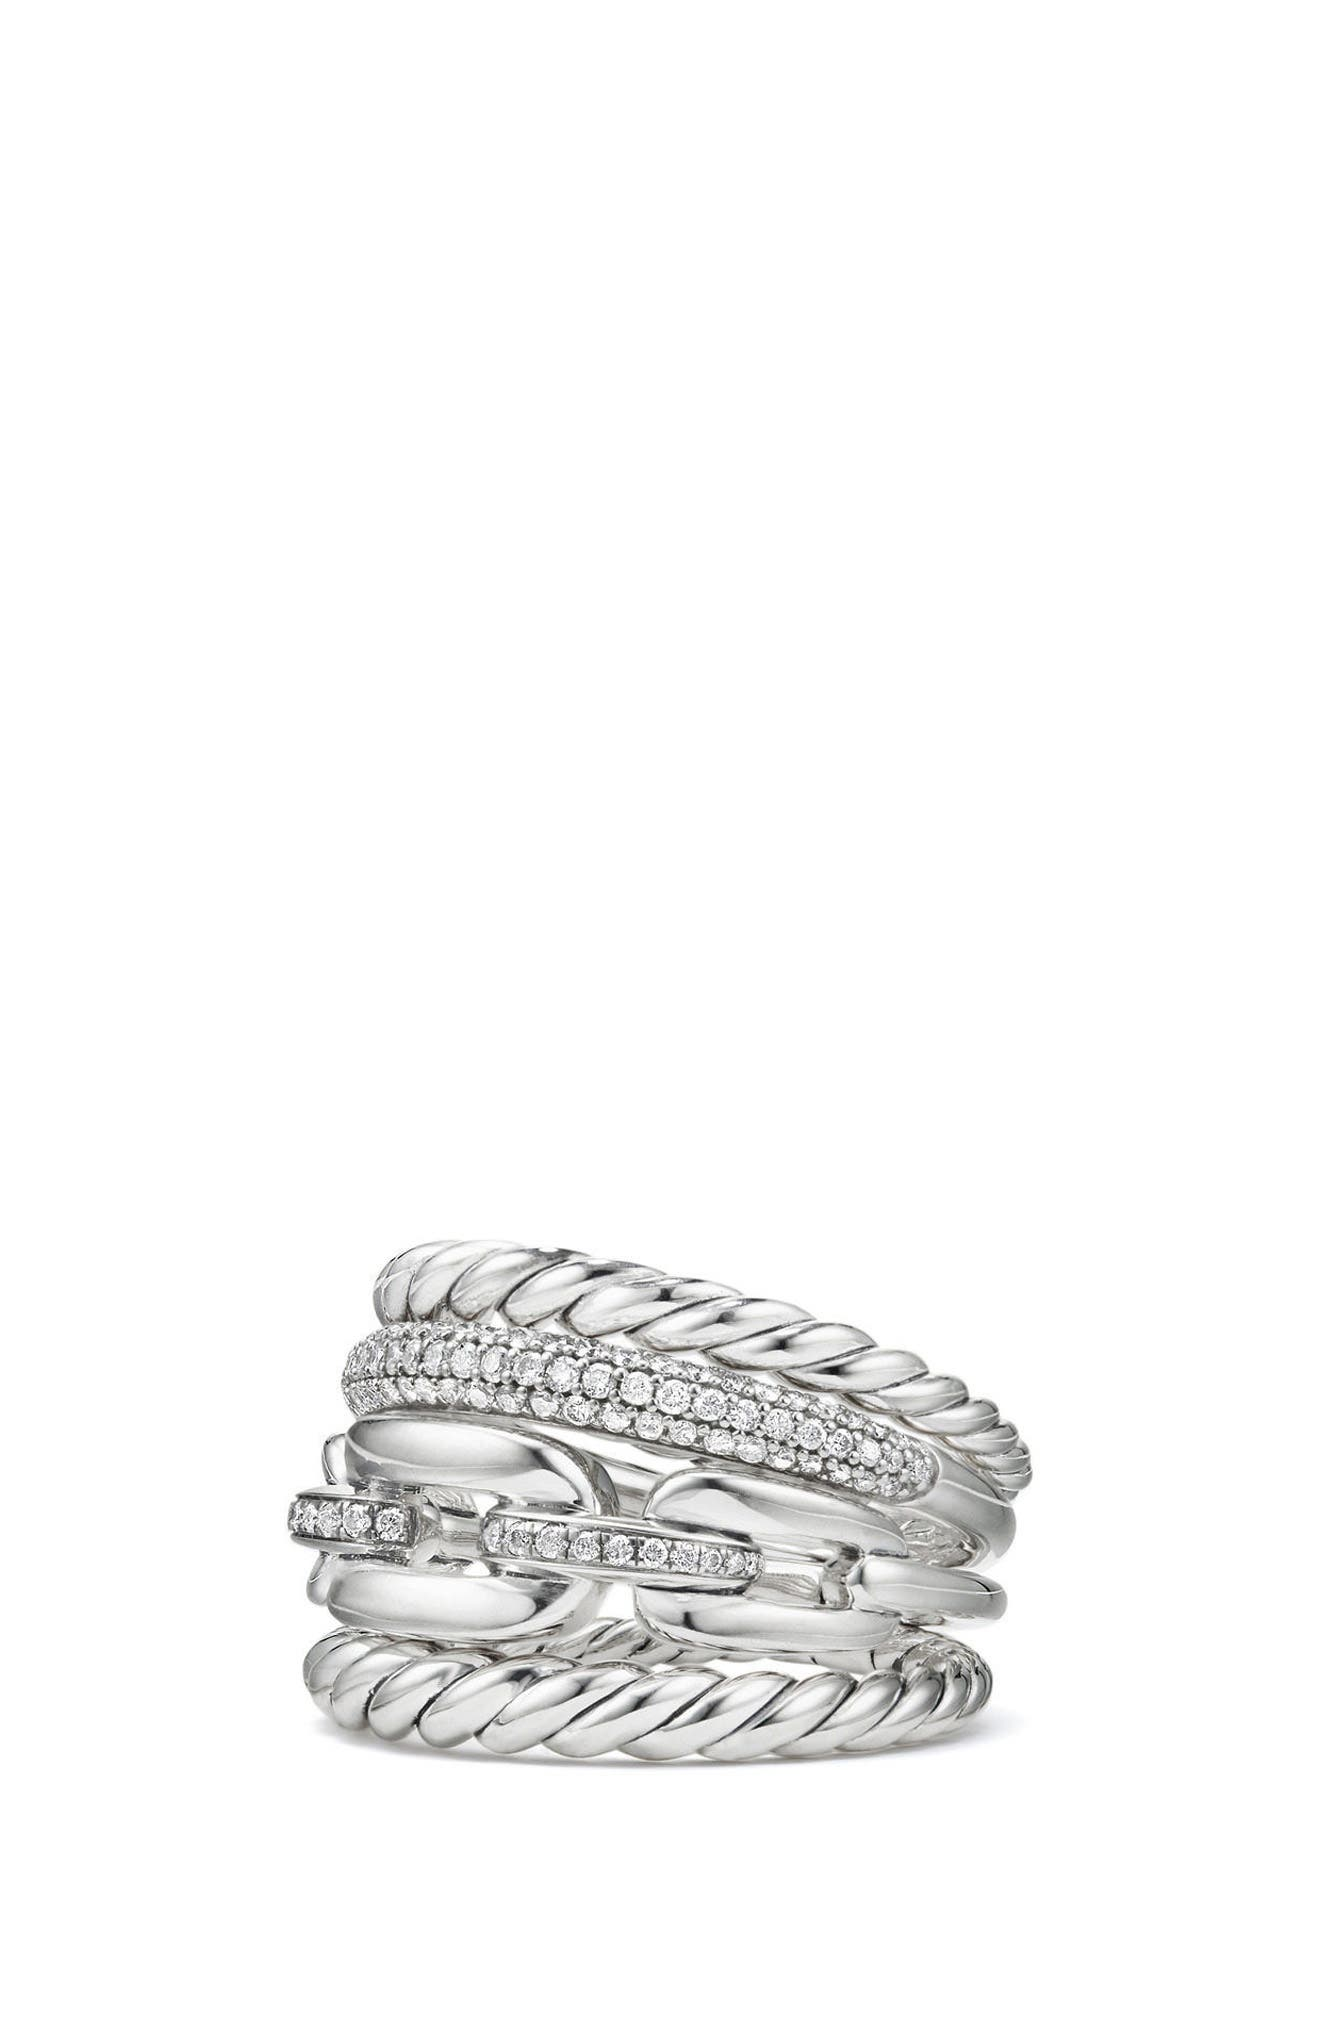 Wellesley Four-Row Ring with Diamonds,                         Main,                         color, SILVER